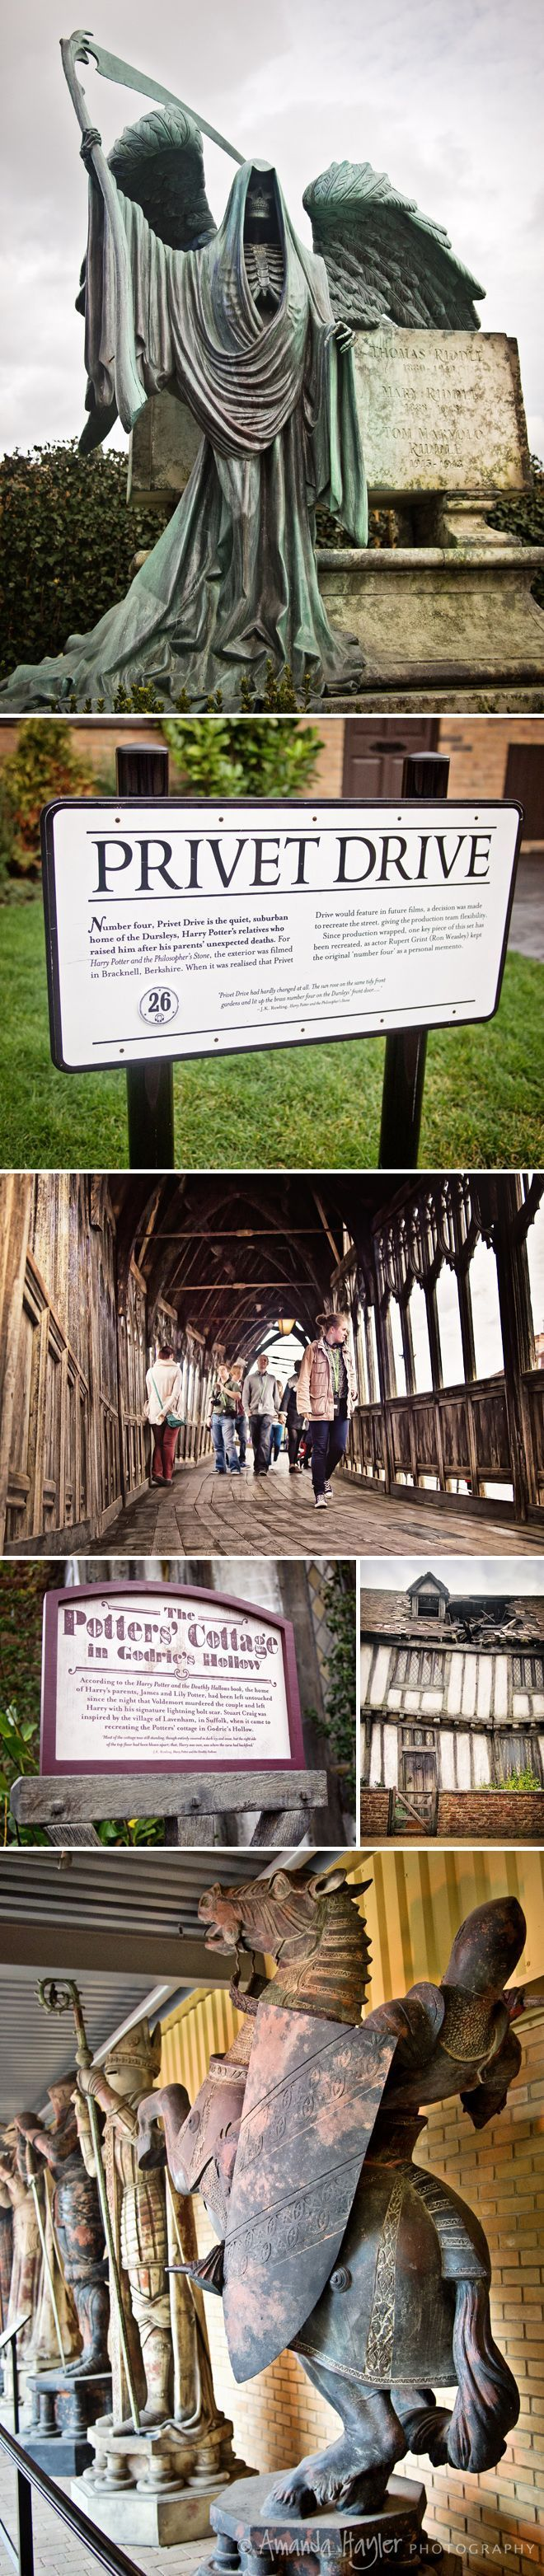 HP sets and locations you can actually visit!!!!-----most glorious adventure you will have in London---- I am heading to London